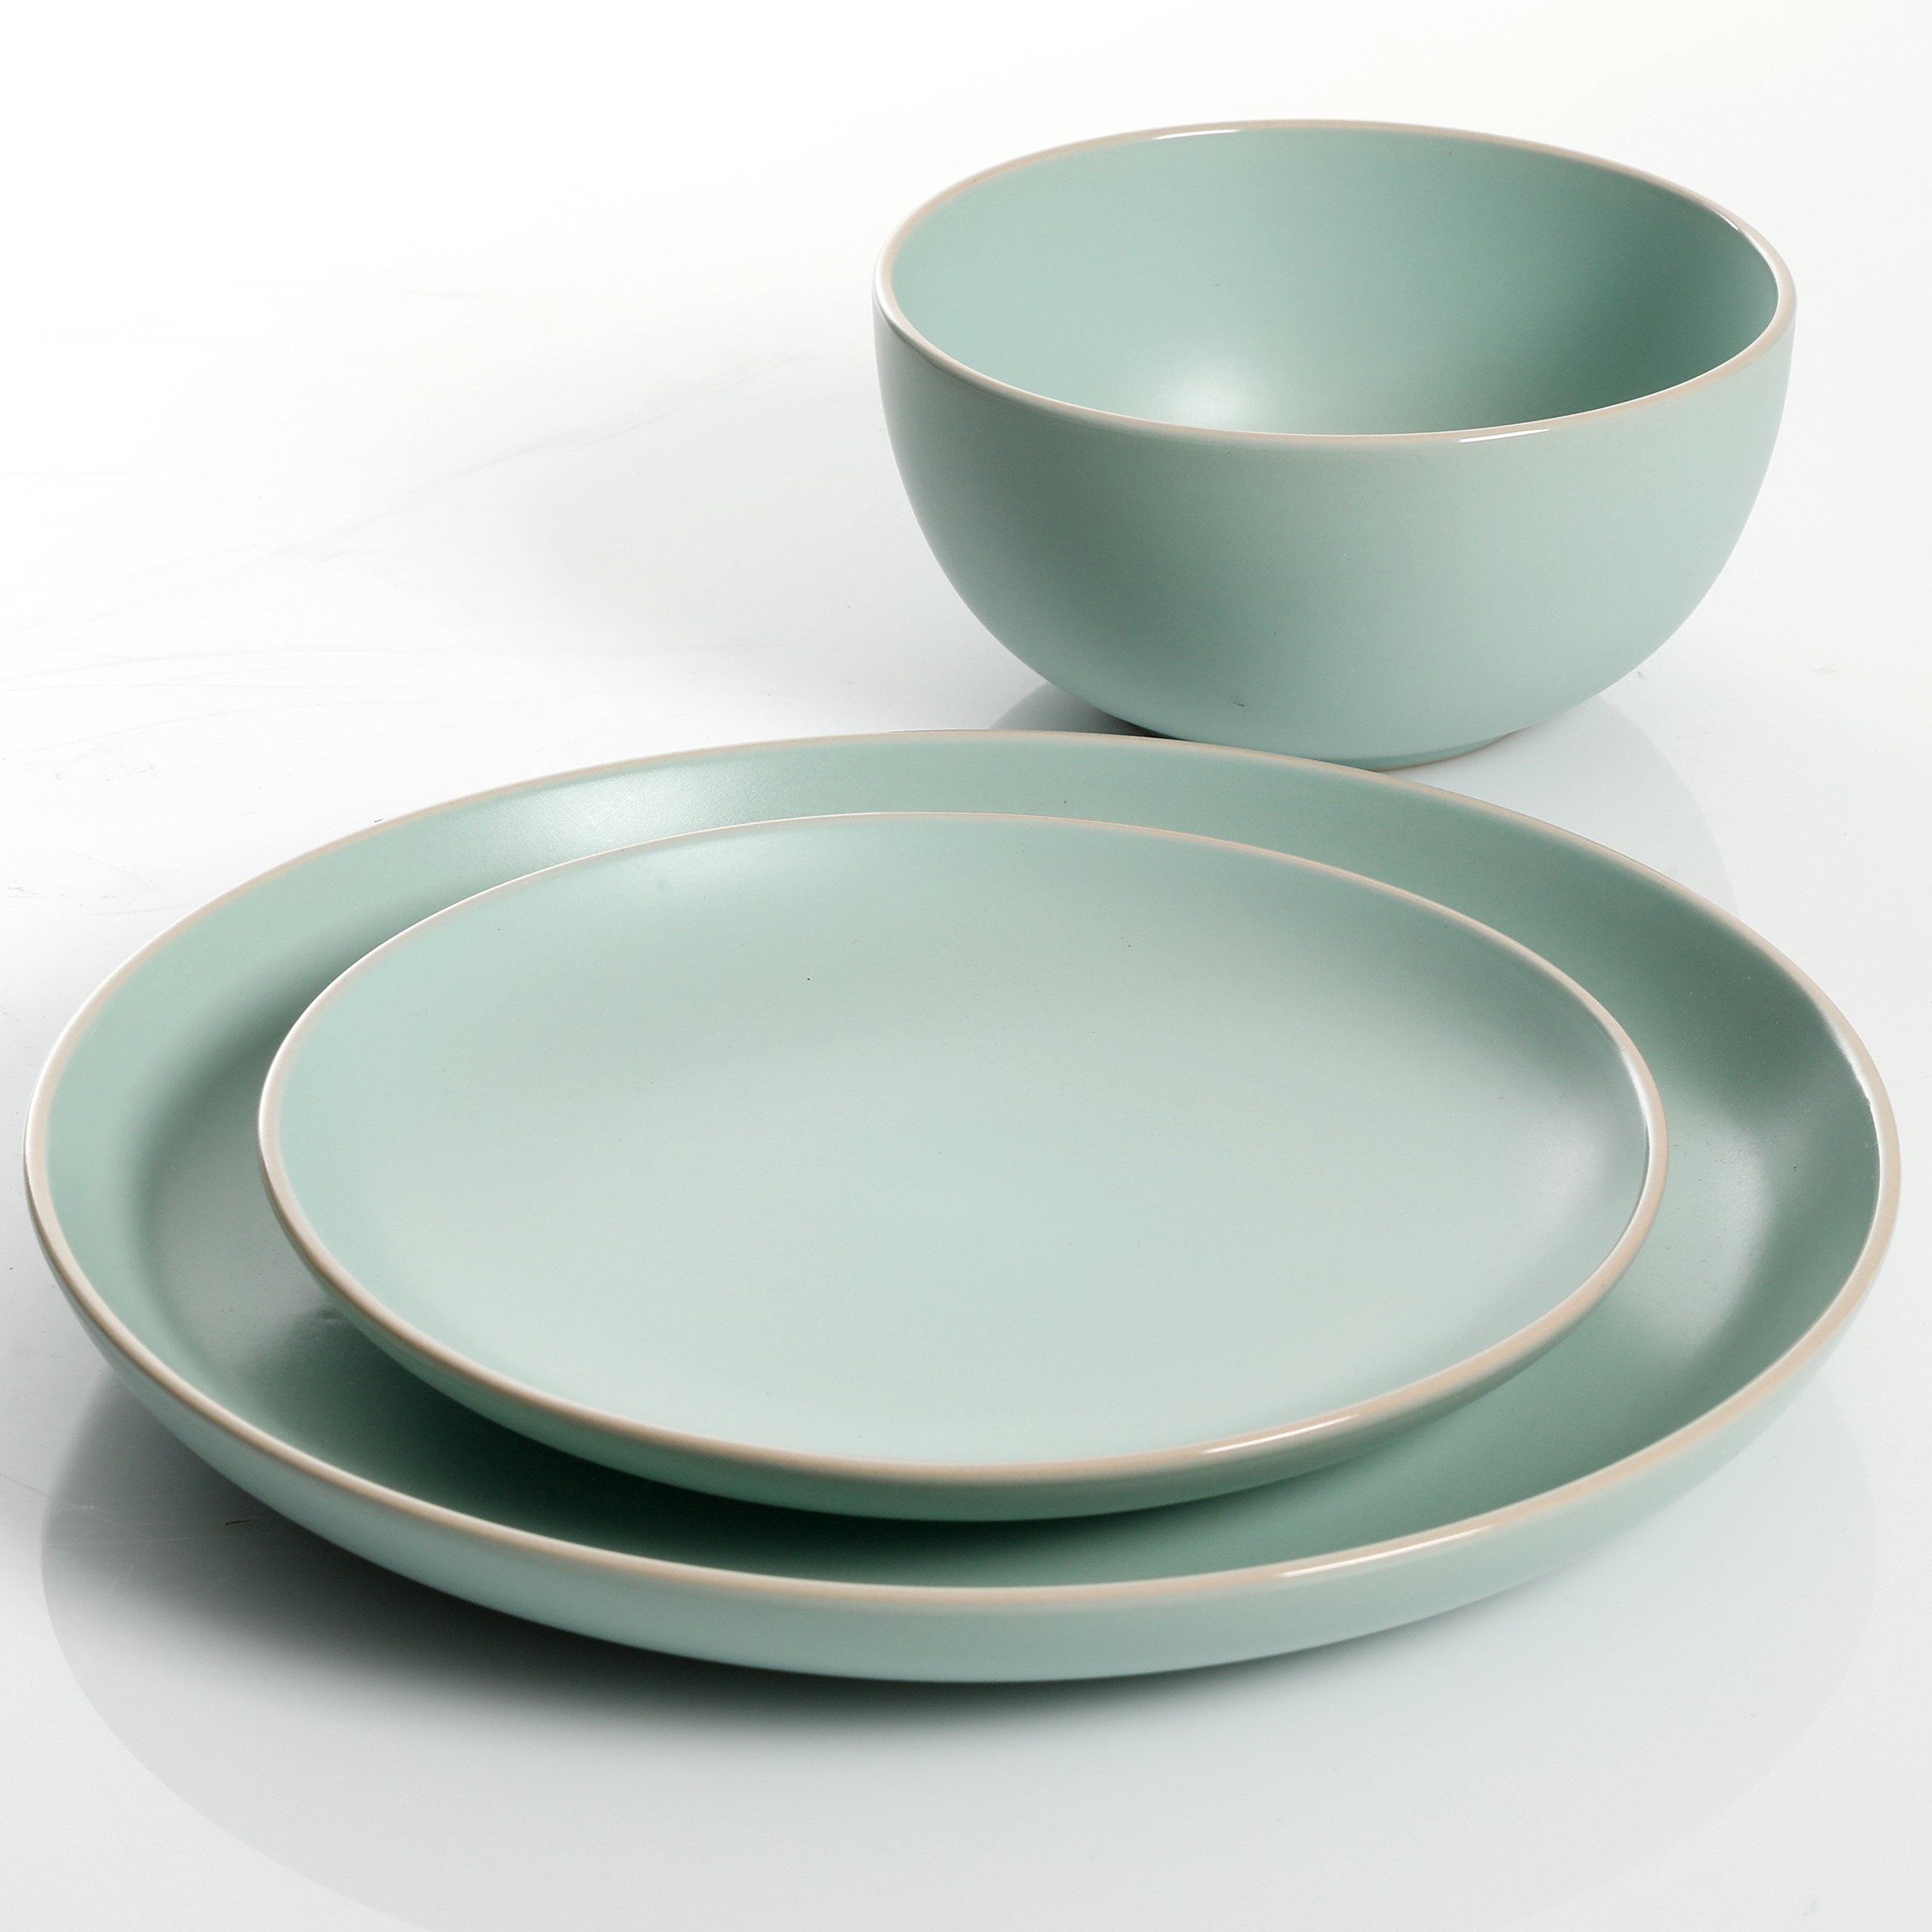 Gibson Home Rockaway 12-Piece Dinnerware Set Service for 4, Teal Matte by Gibson Home (Image #4)